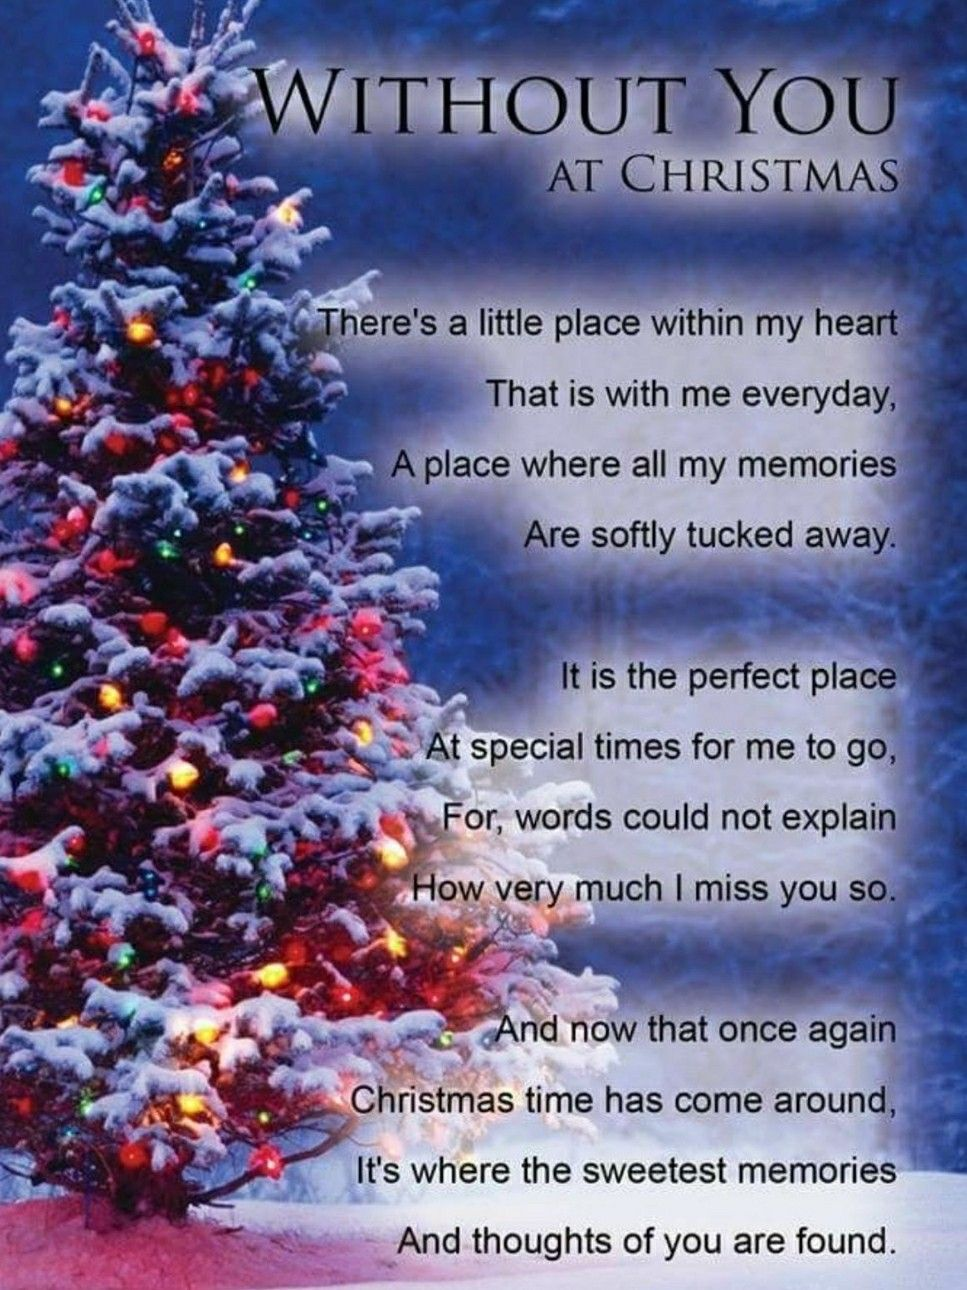 Missing Dad At Christmas.Without You For Christmas Missing Dad Christmas In